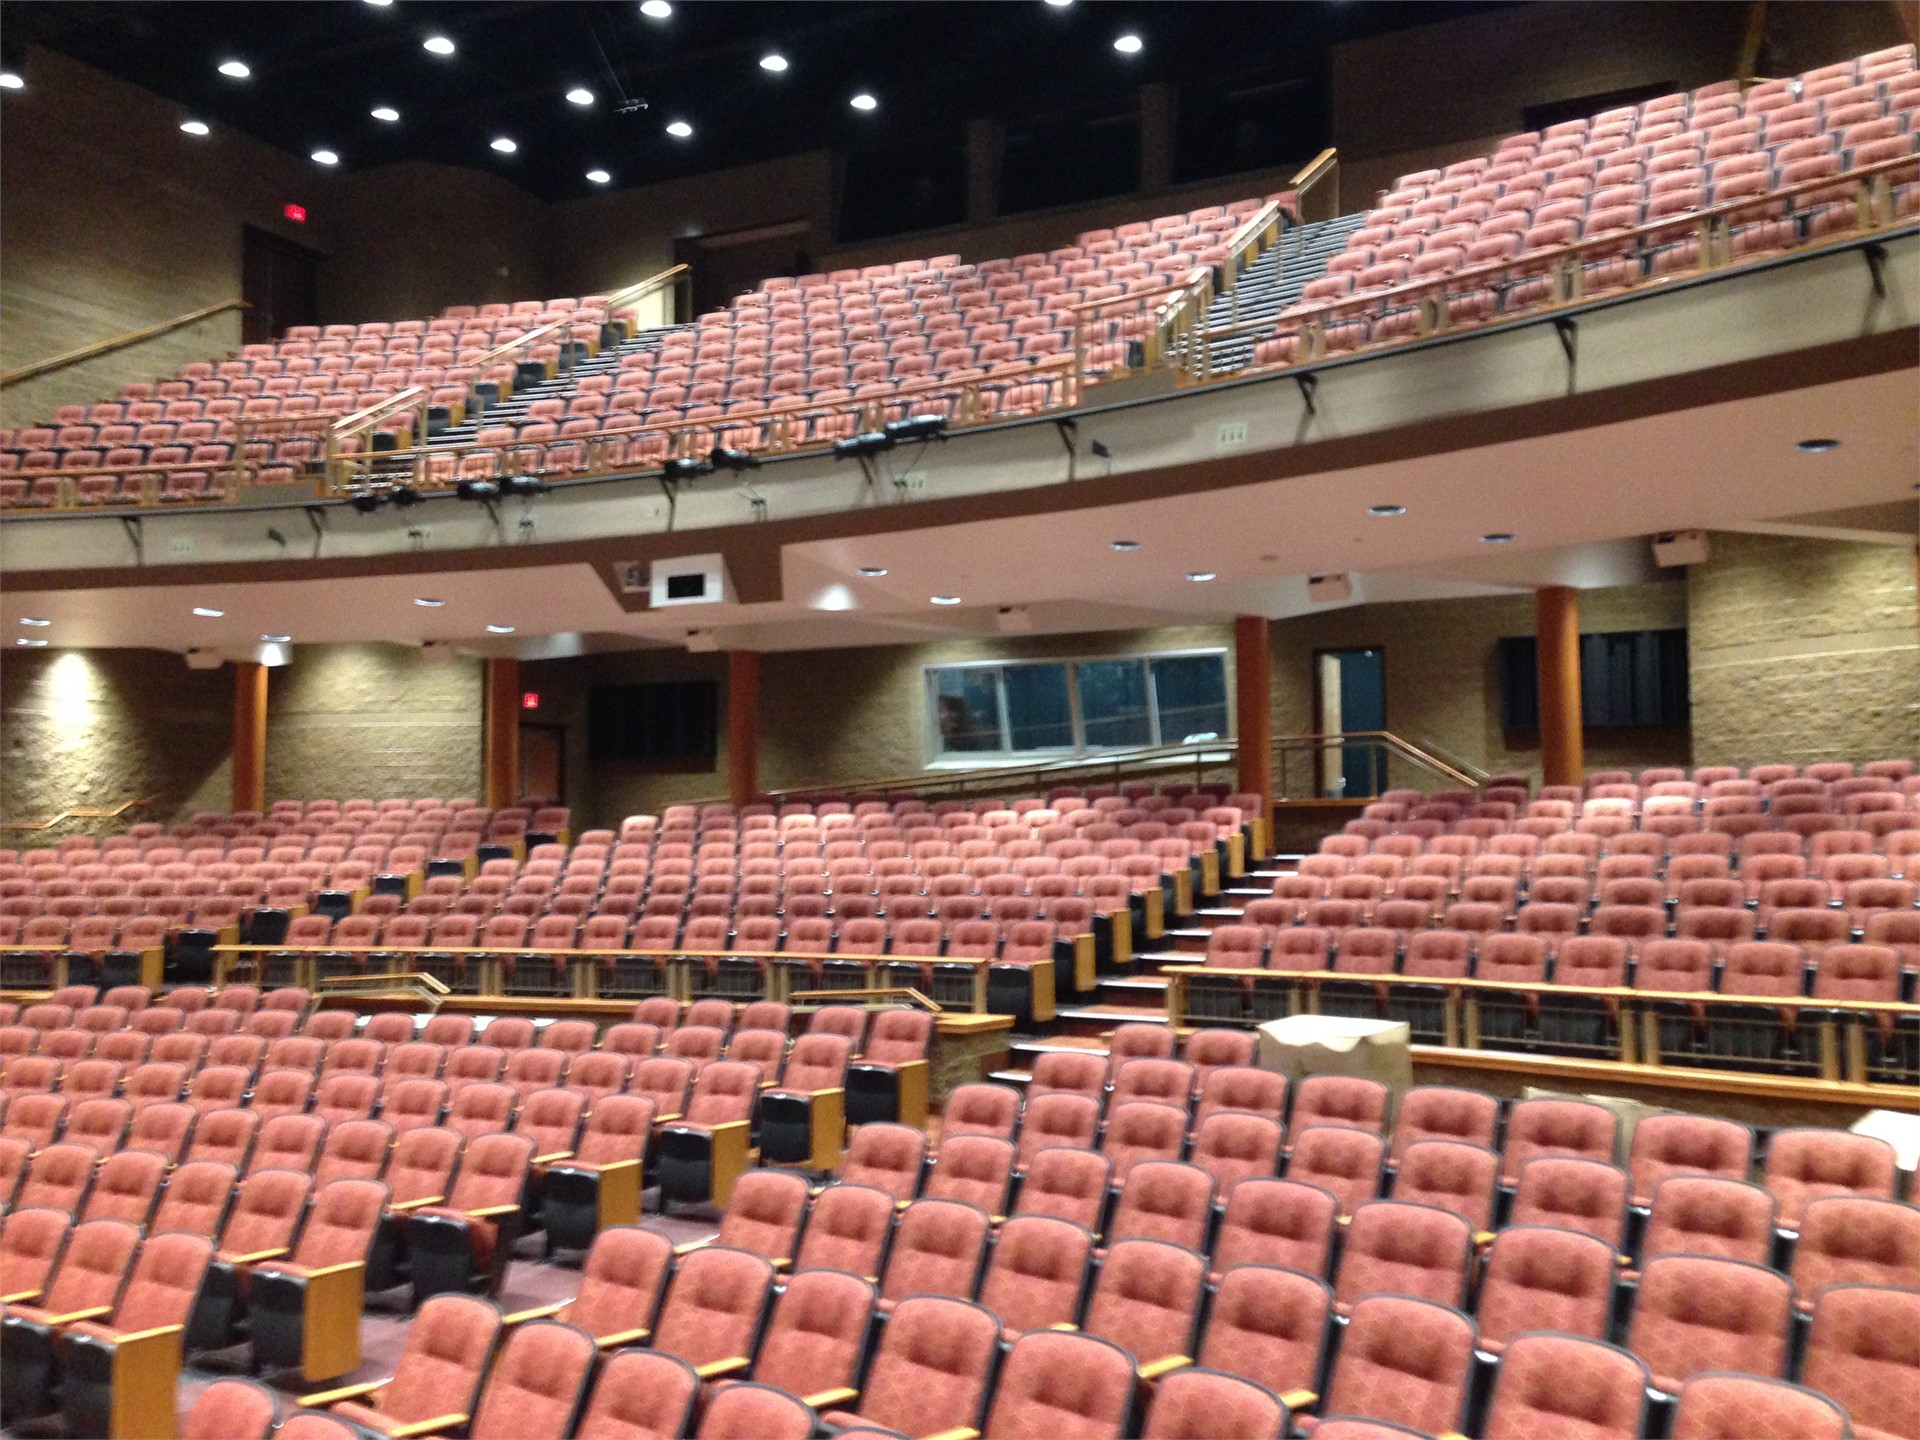 Picture of seating from stage left